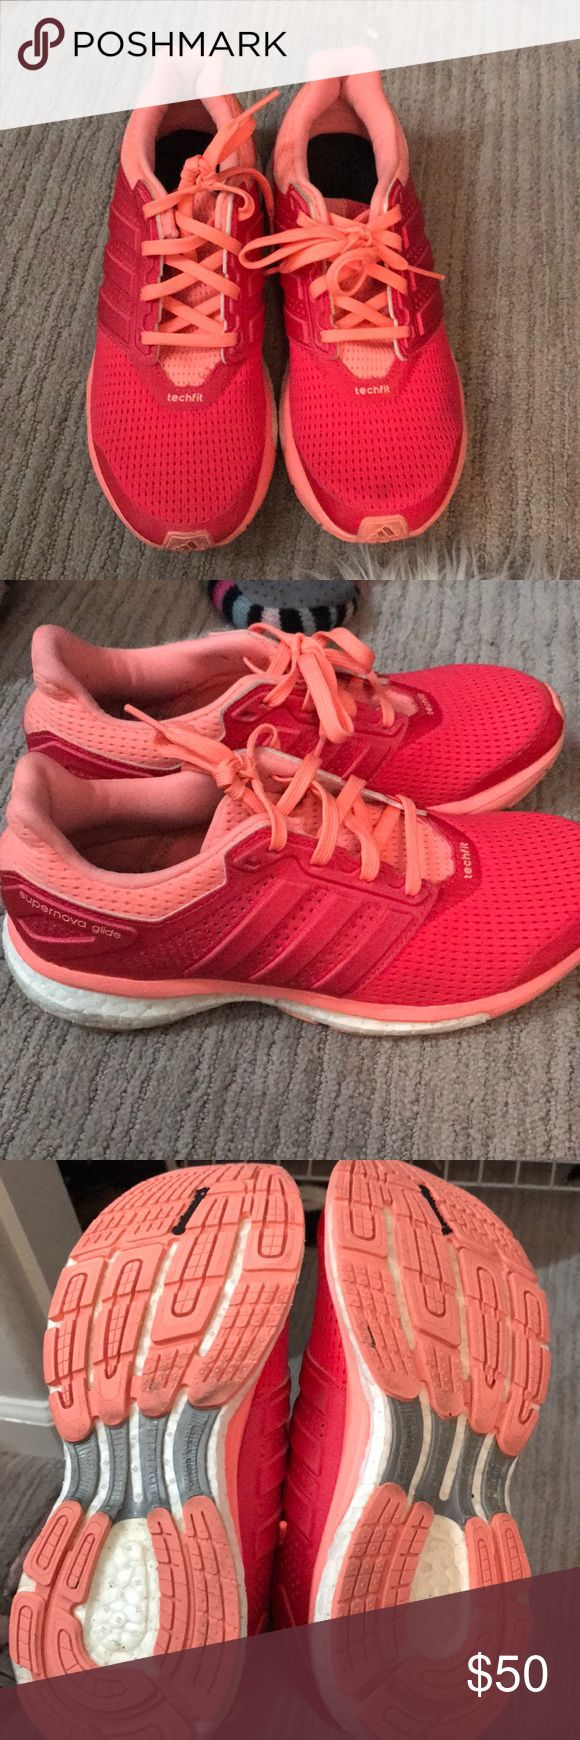 ADIDAS RUNNING SHOES Great condition worn 1-2x tops. Adidas running shoes supernova glide. Missing inner sole cushion adidas Shoes Sneakers